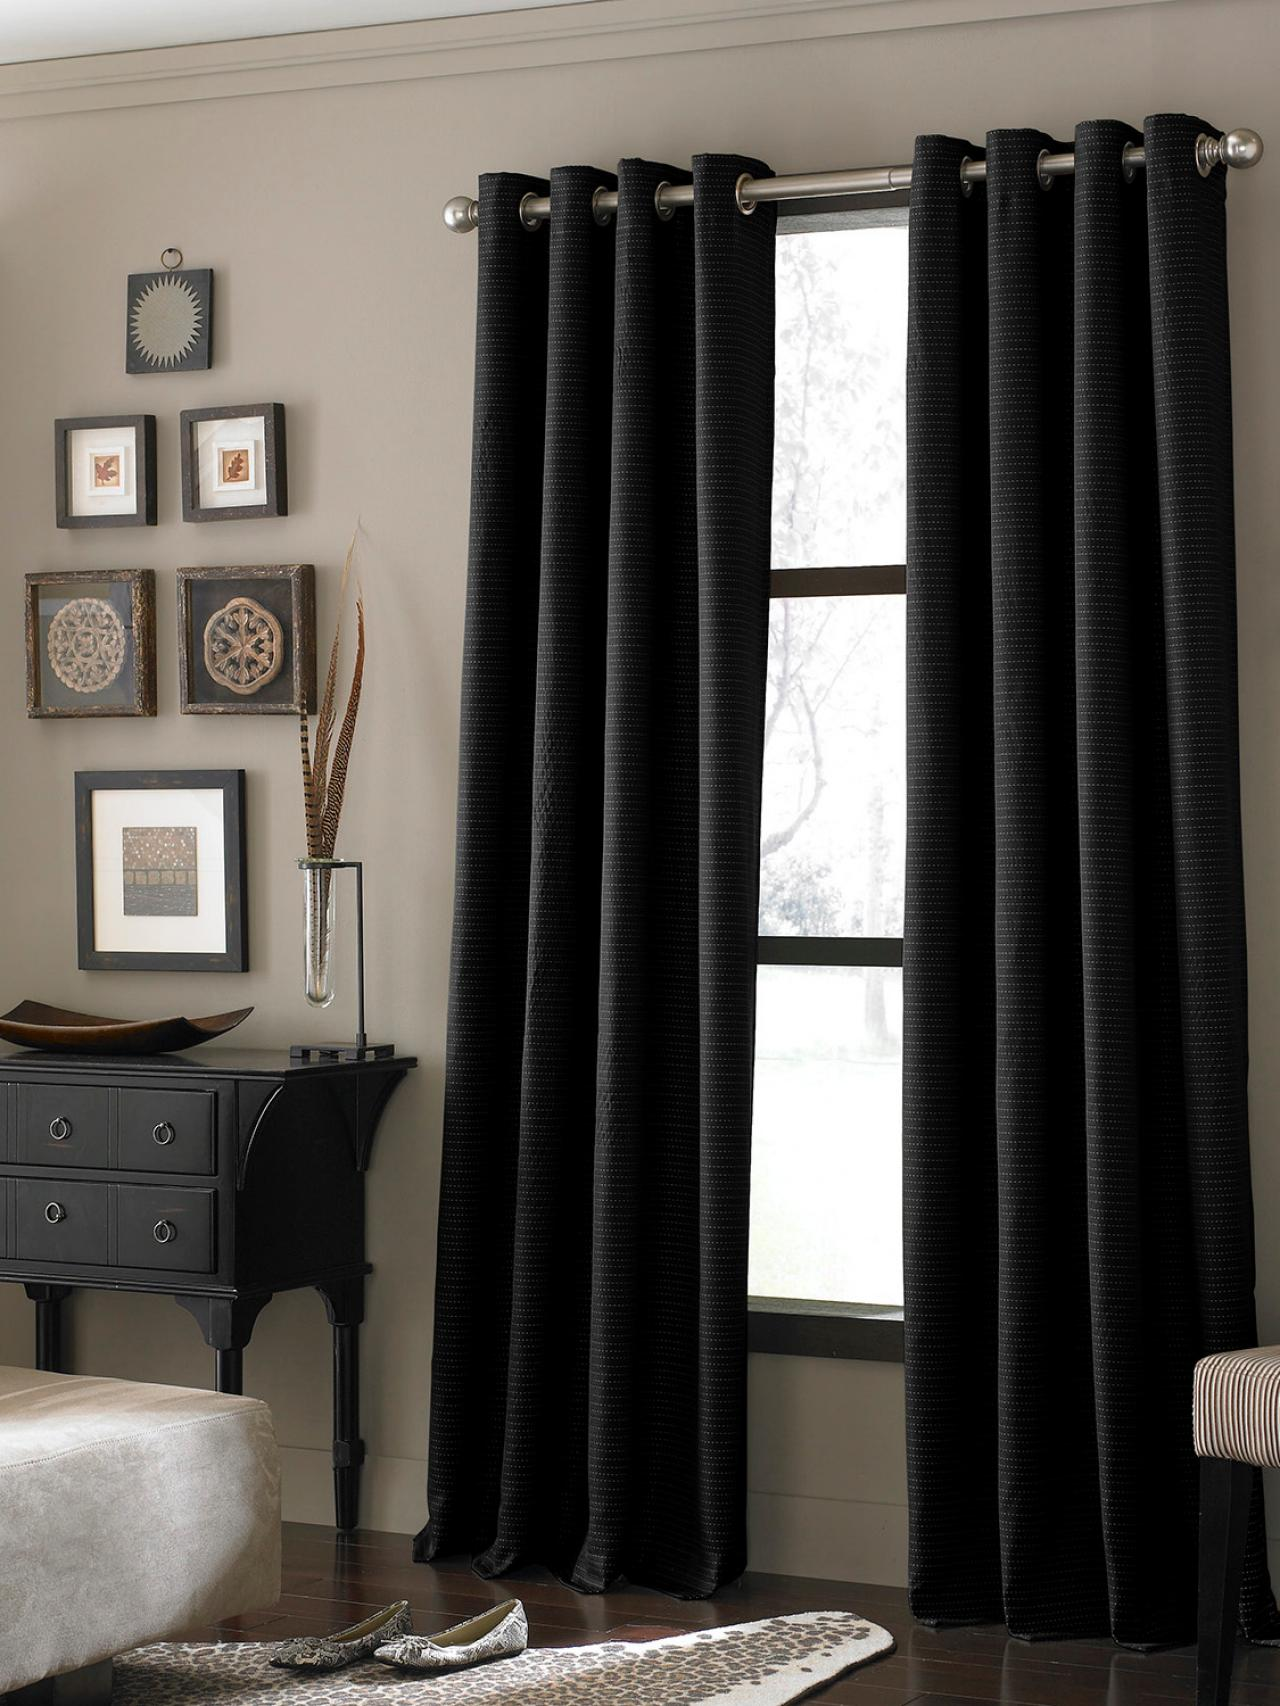 black-textured-curtains